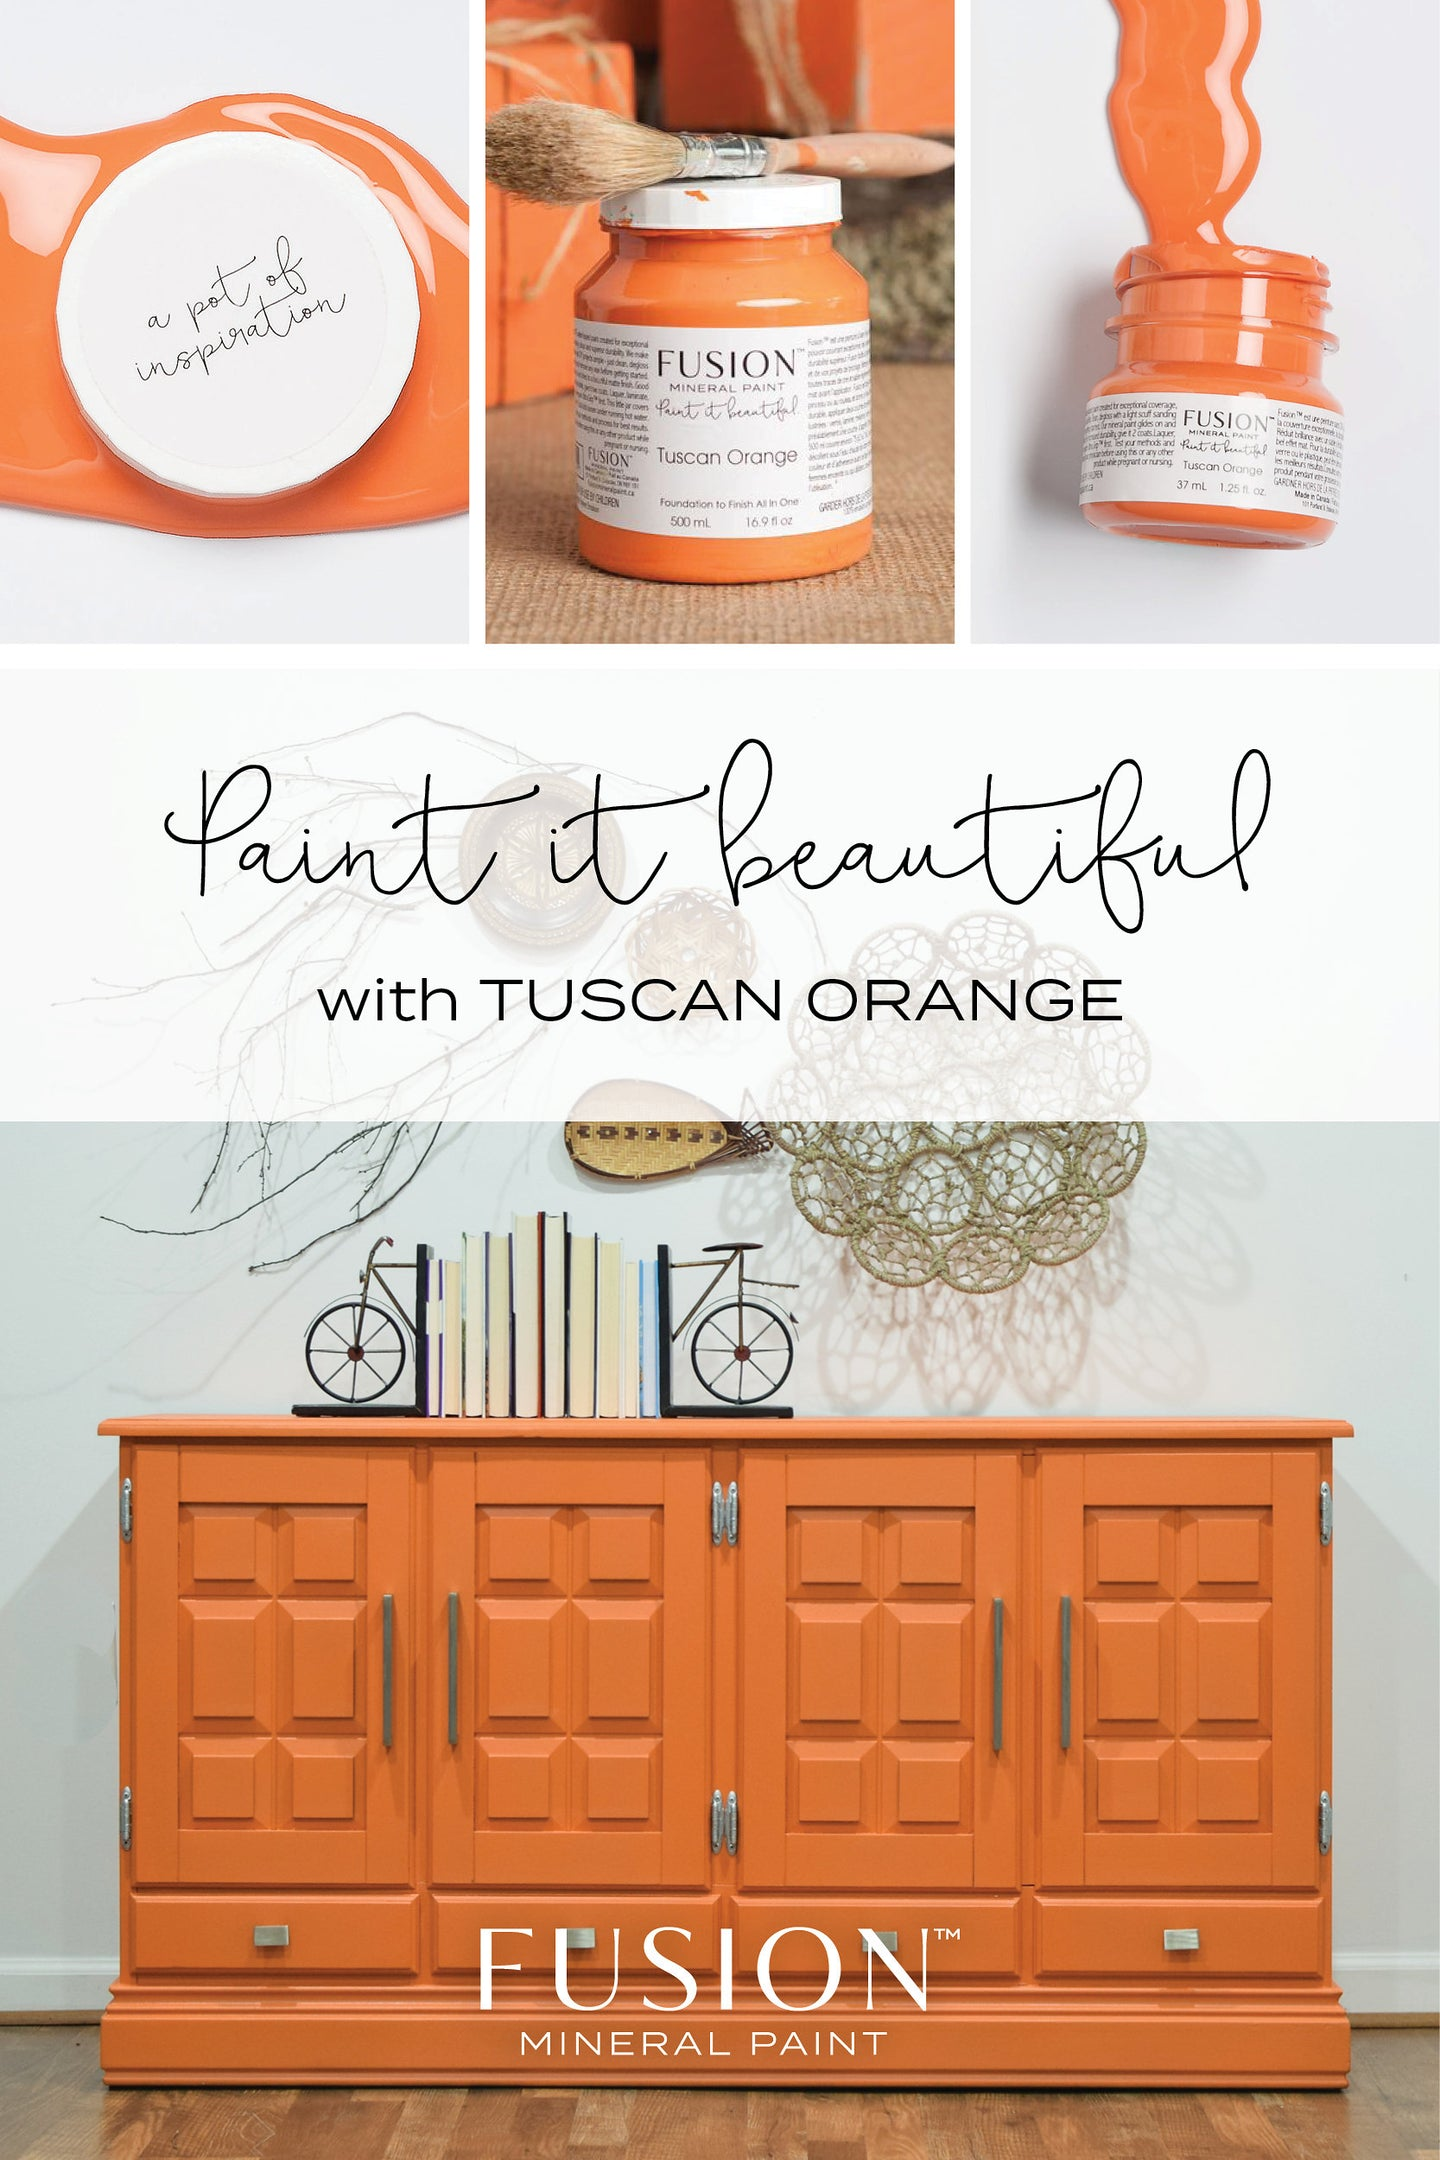 Tuscan Orange FUSION Mineral Paint